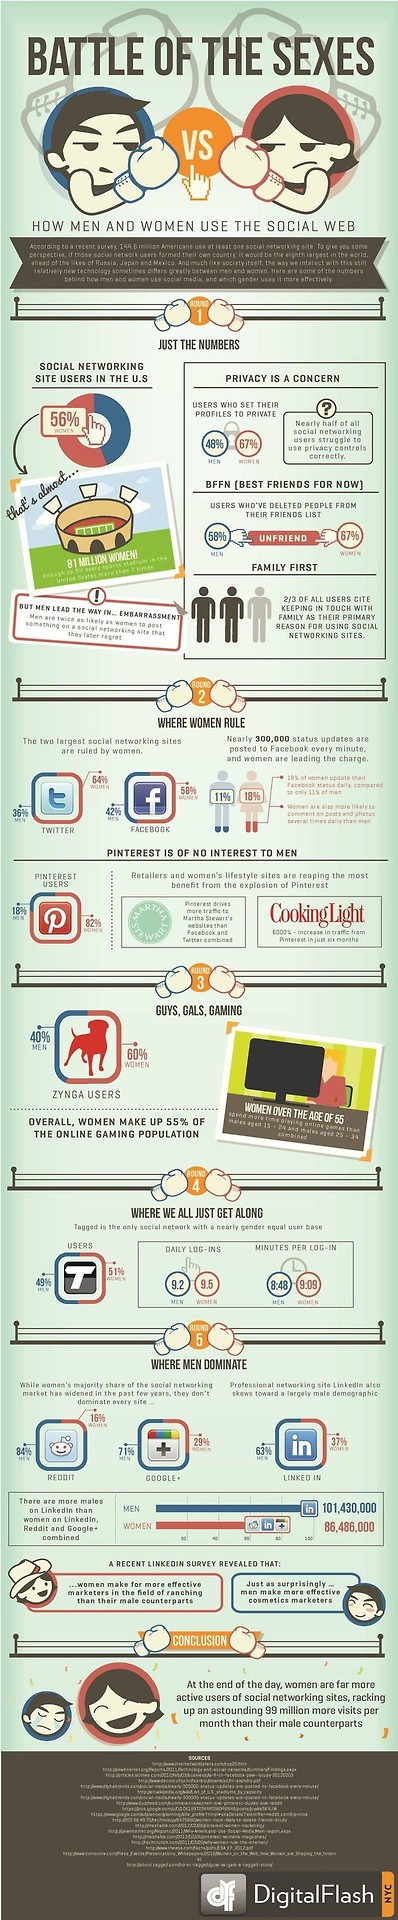 The battle of the sexes in the social web. This is from DigitalFlash. Hat tip to ChatterBlast Media.